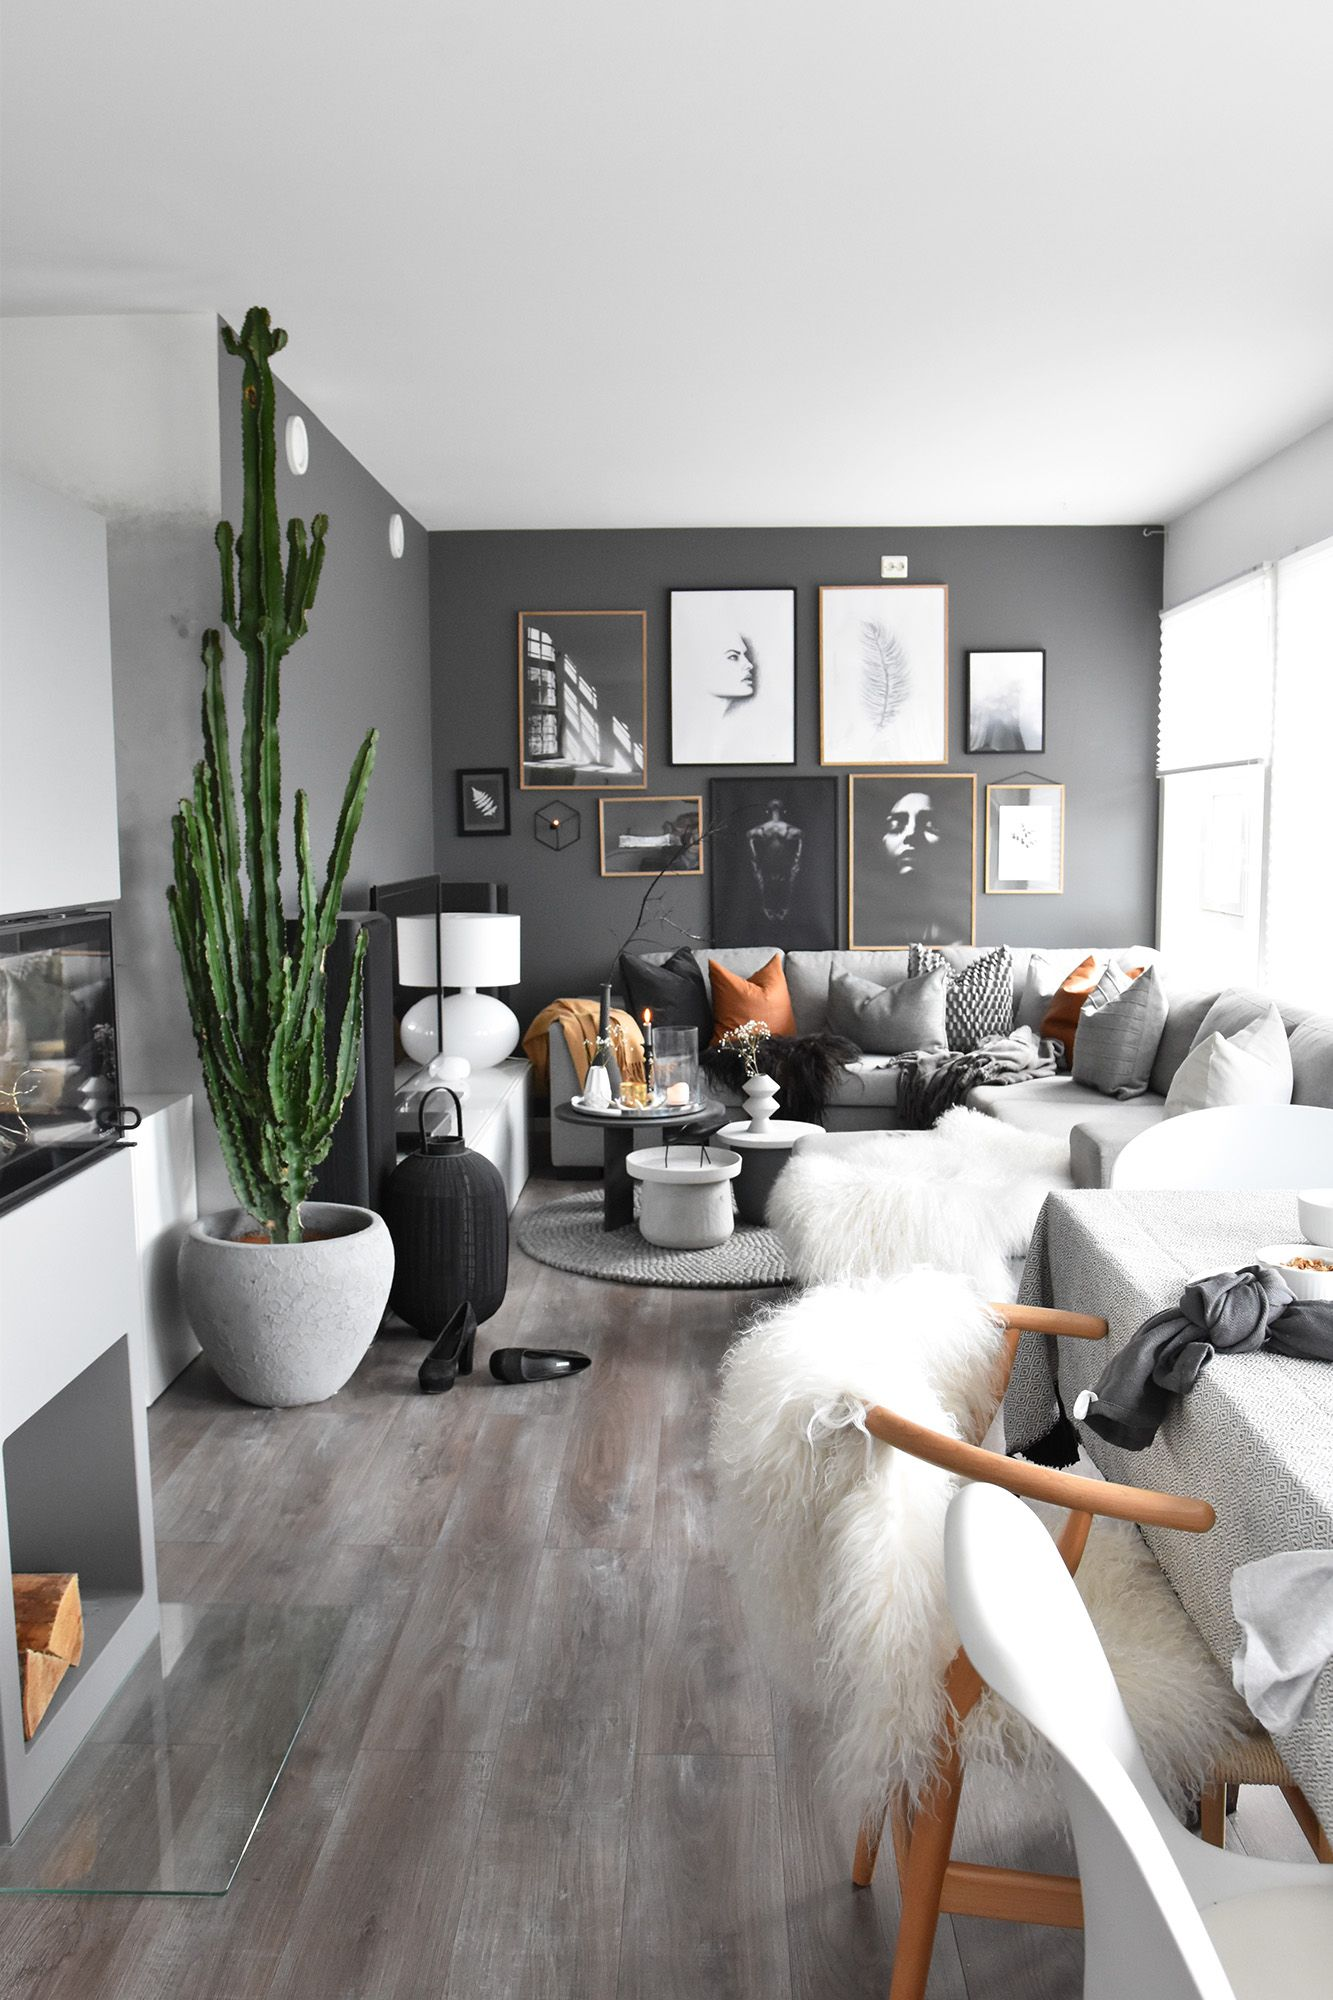 10 Fall Trends The Season s Latest Ideas Wohnzimmer IdeenHaus